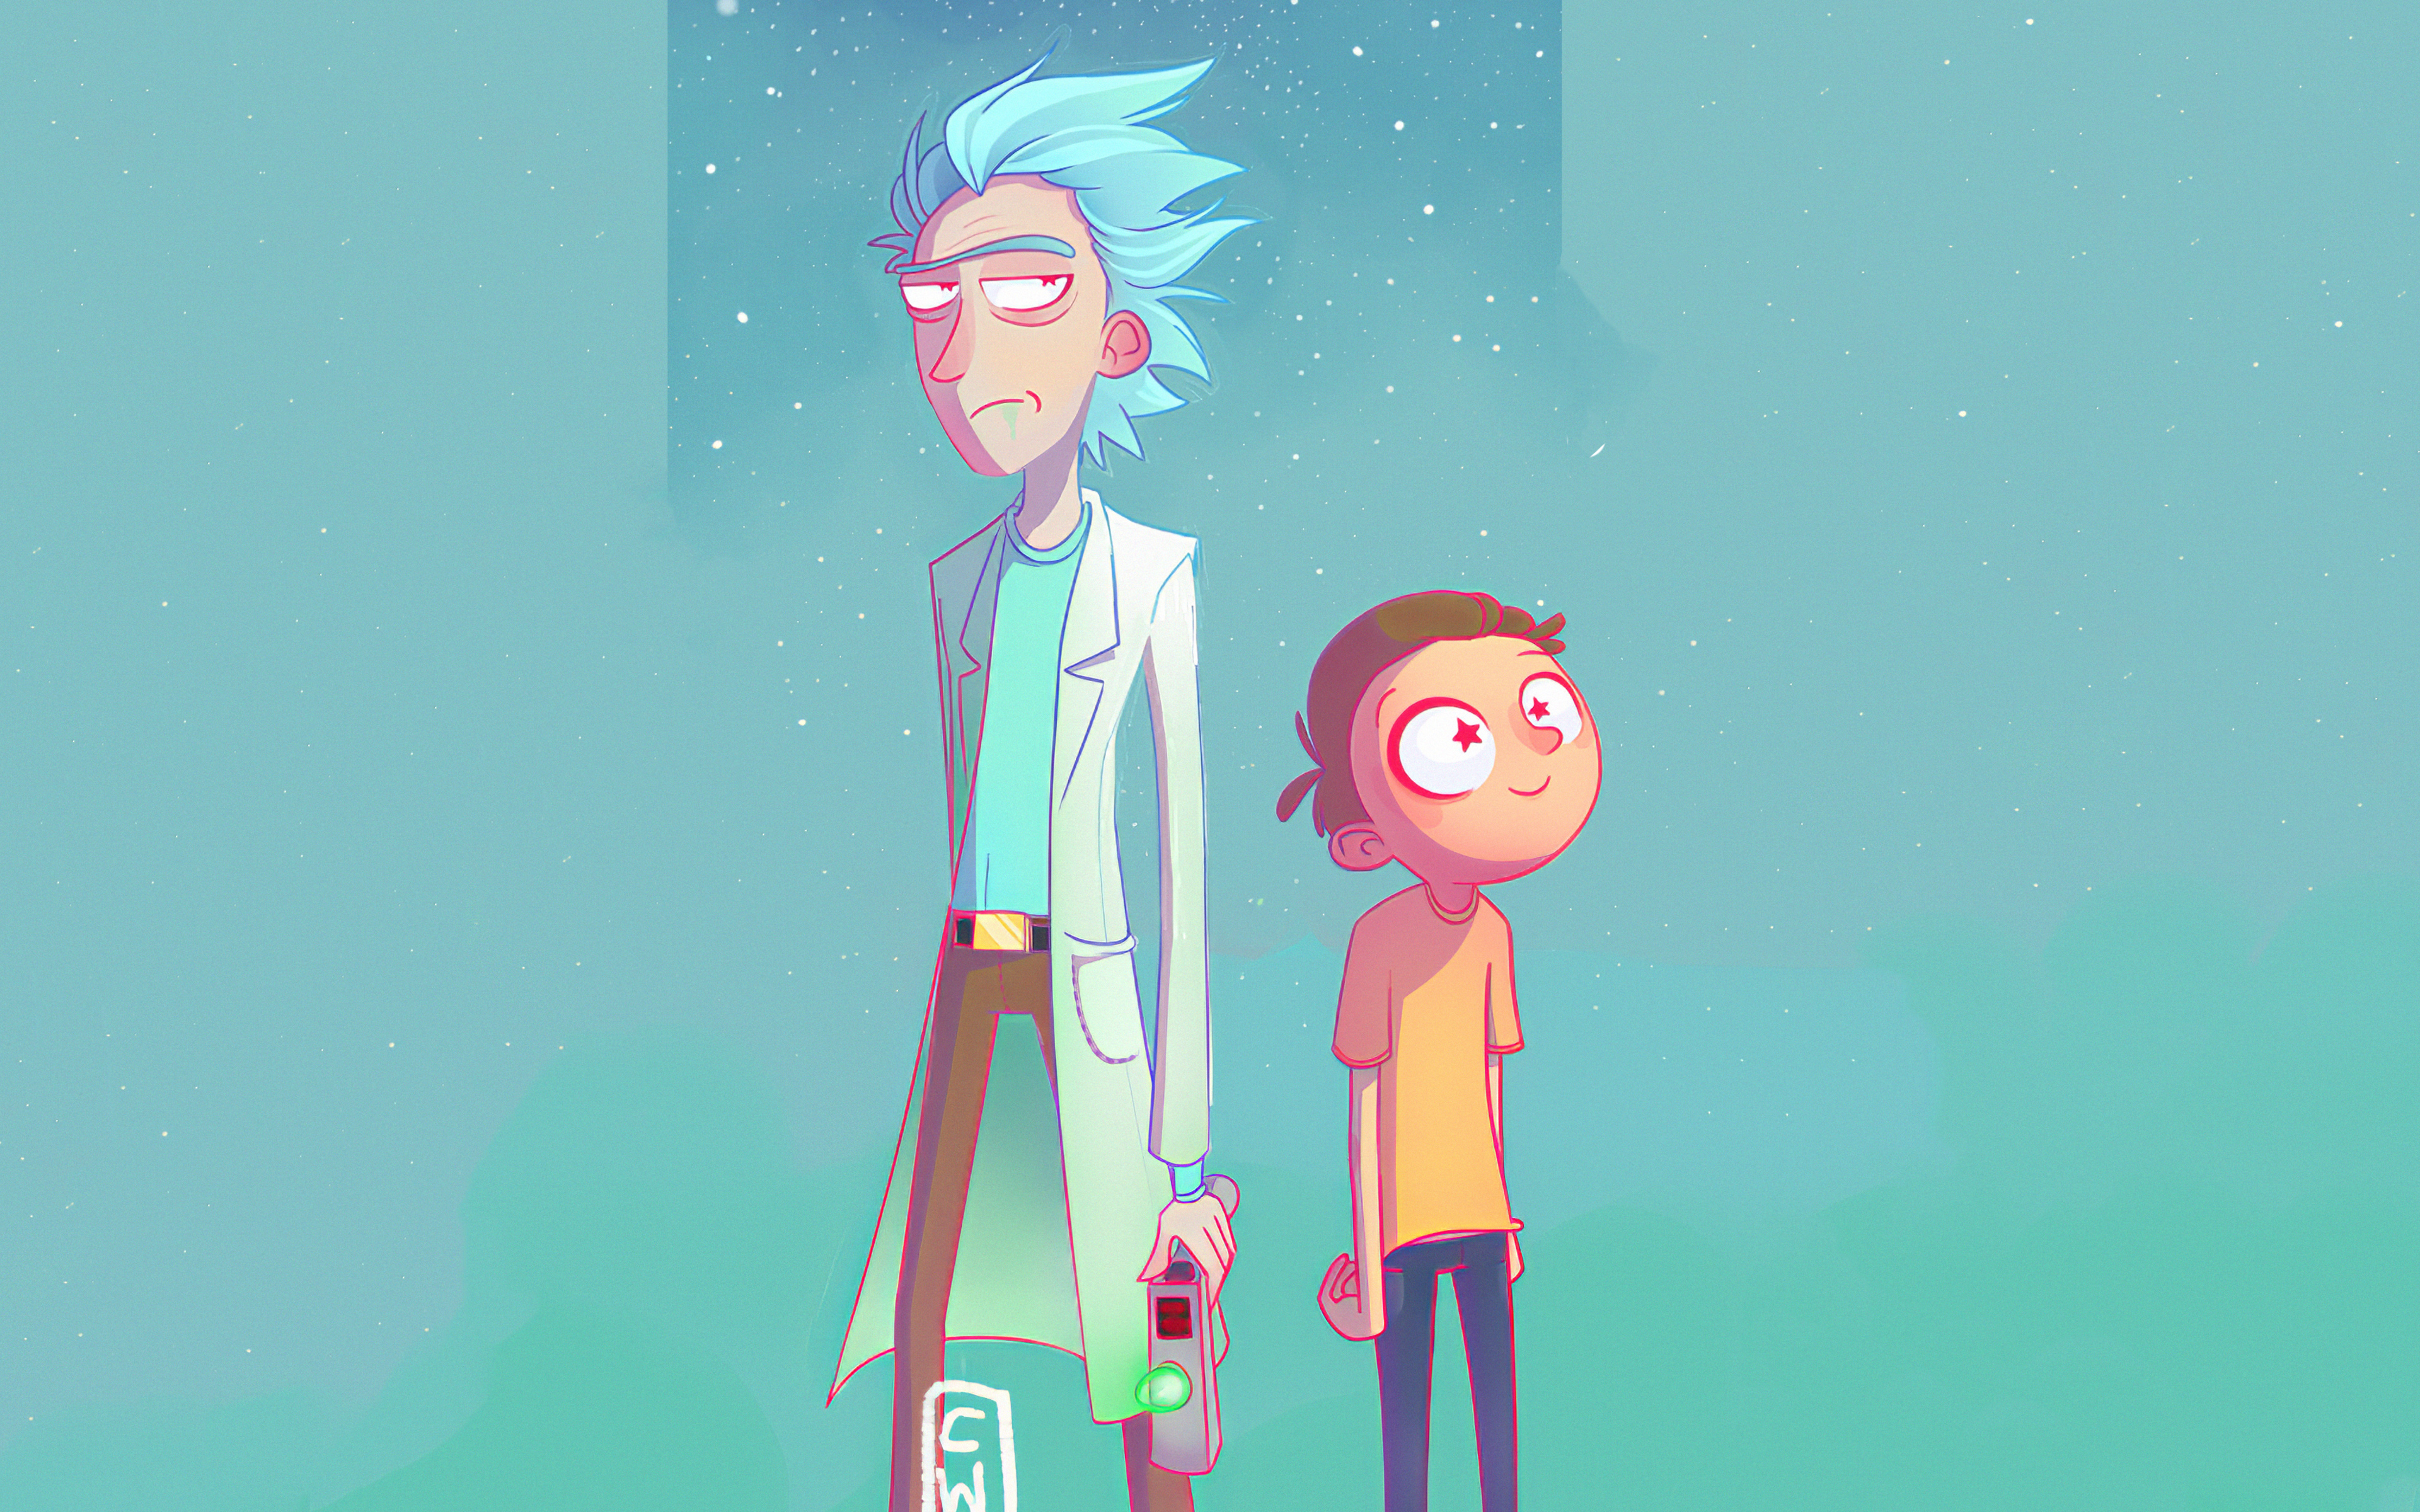 Rick And Morty Artwork Wallpaper 4k Ultra Hd Id 4711